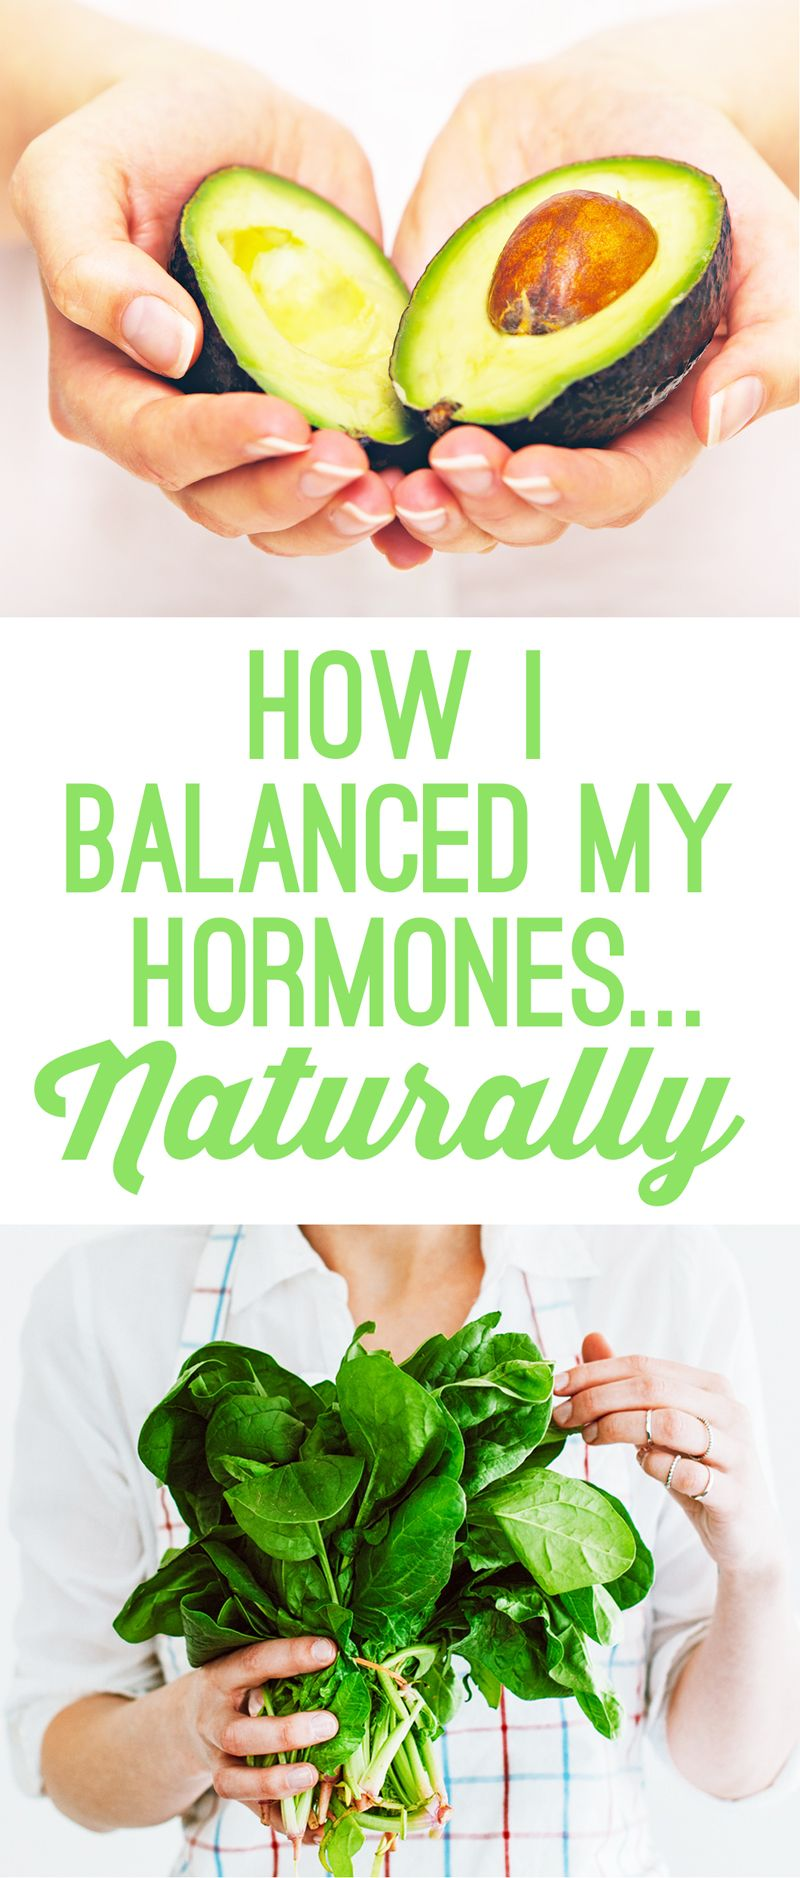 How I Balanced My Hormones And How I M Still Working On It Unbound Wellness Healthy Hormones Hypothyroidism Diet Balance Hormones Naturally